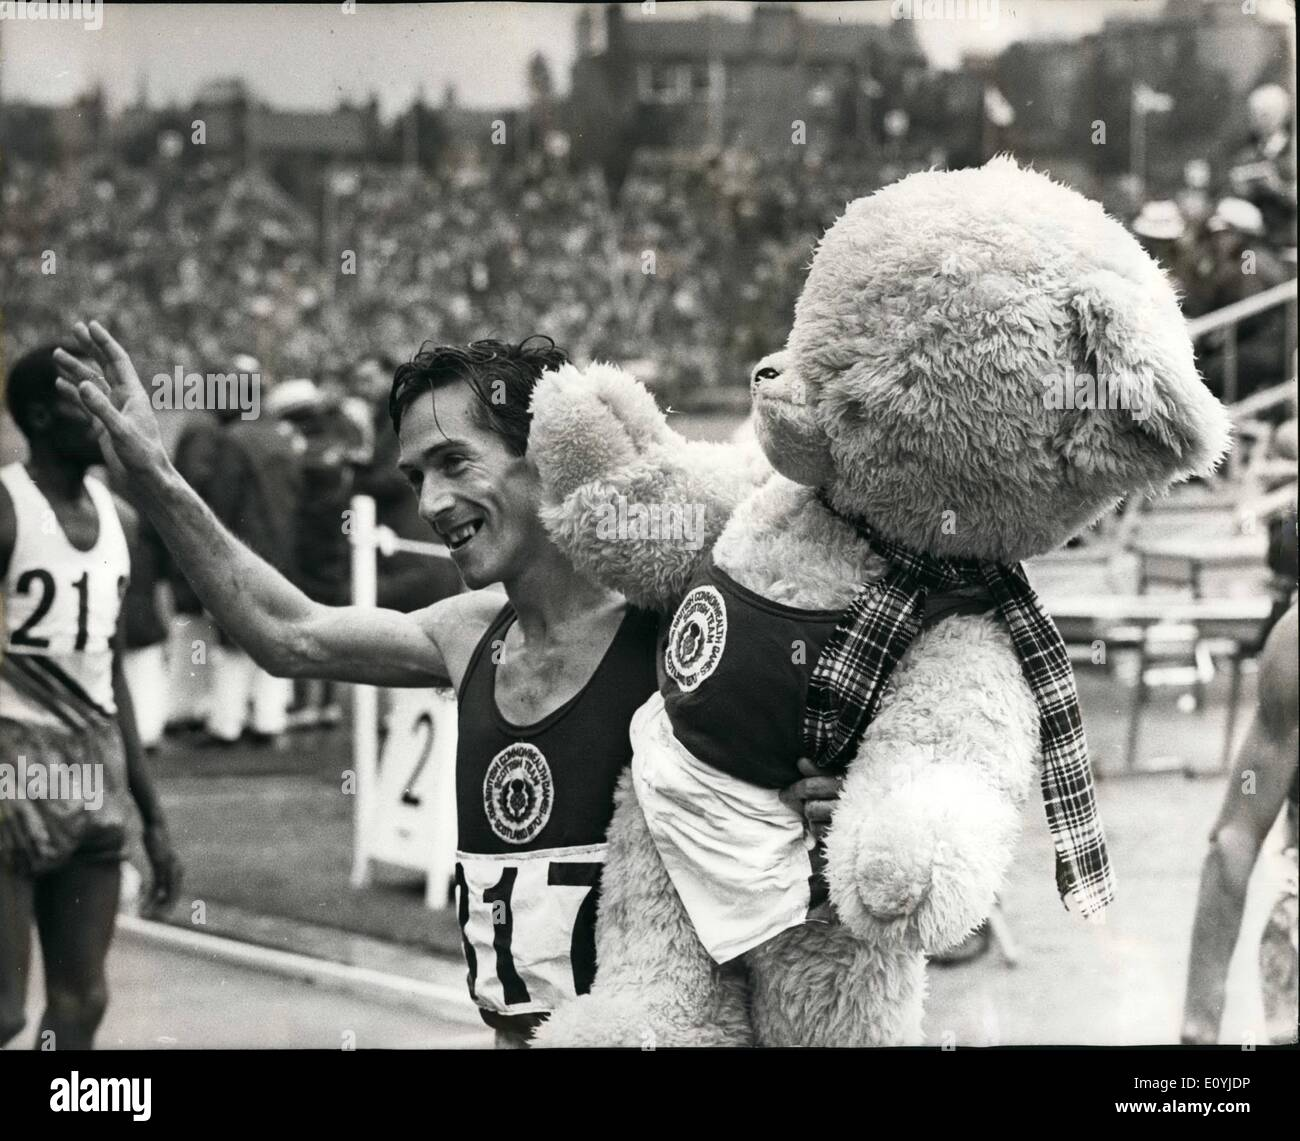 Jul. 07, 1970 - The Commonwealth game in Edinburgh Scotland's Lachie Stewart and his Mascot: Photo shows Lachie Stewart. of Scotland, hold a giant teddy bear, his team's mascot, and waves to the crowd after he had won the 10,000-metre race yesterday, beating Australia's Ron Clarke, who finished second. - Stock Image